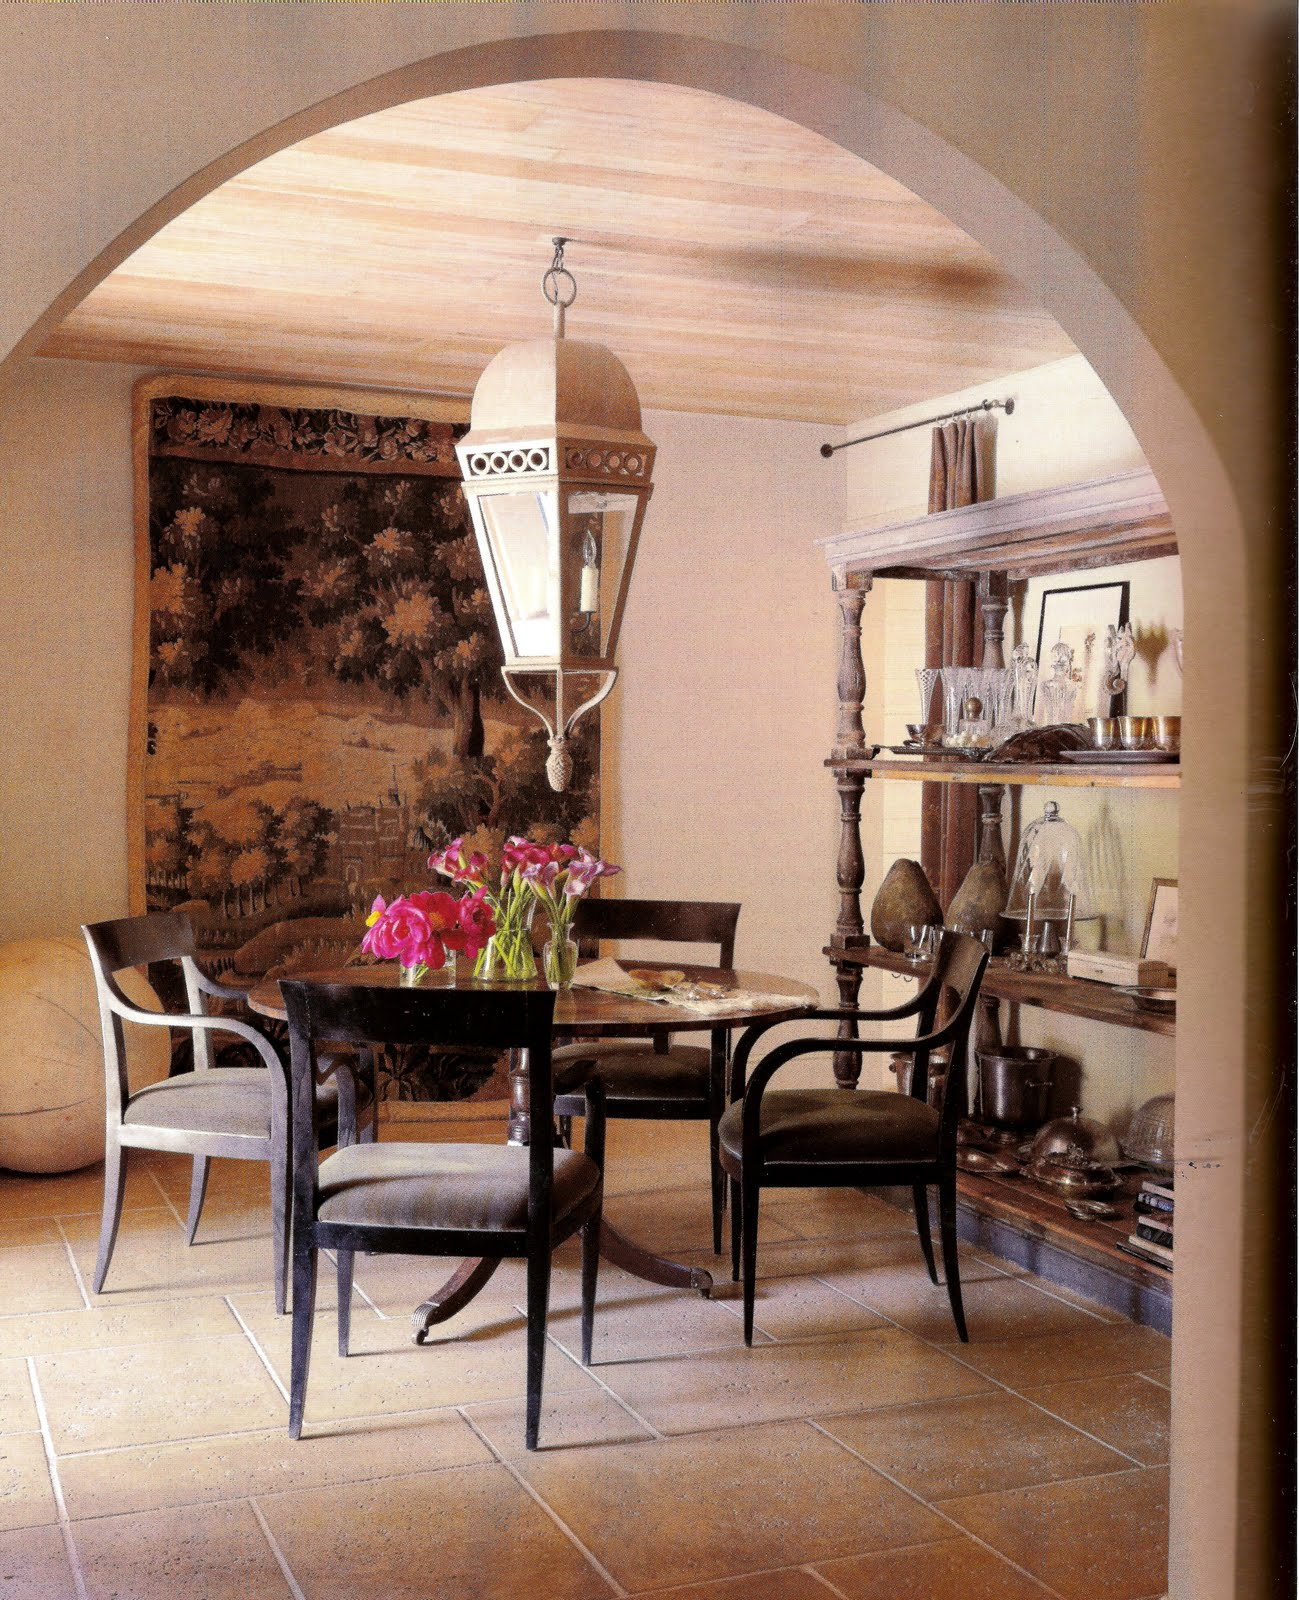 According to lia magazine monday small spaces Pretty dining rooms